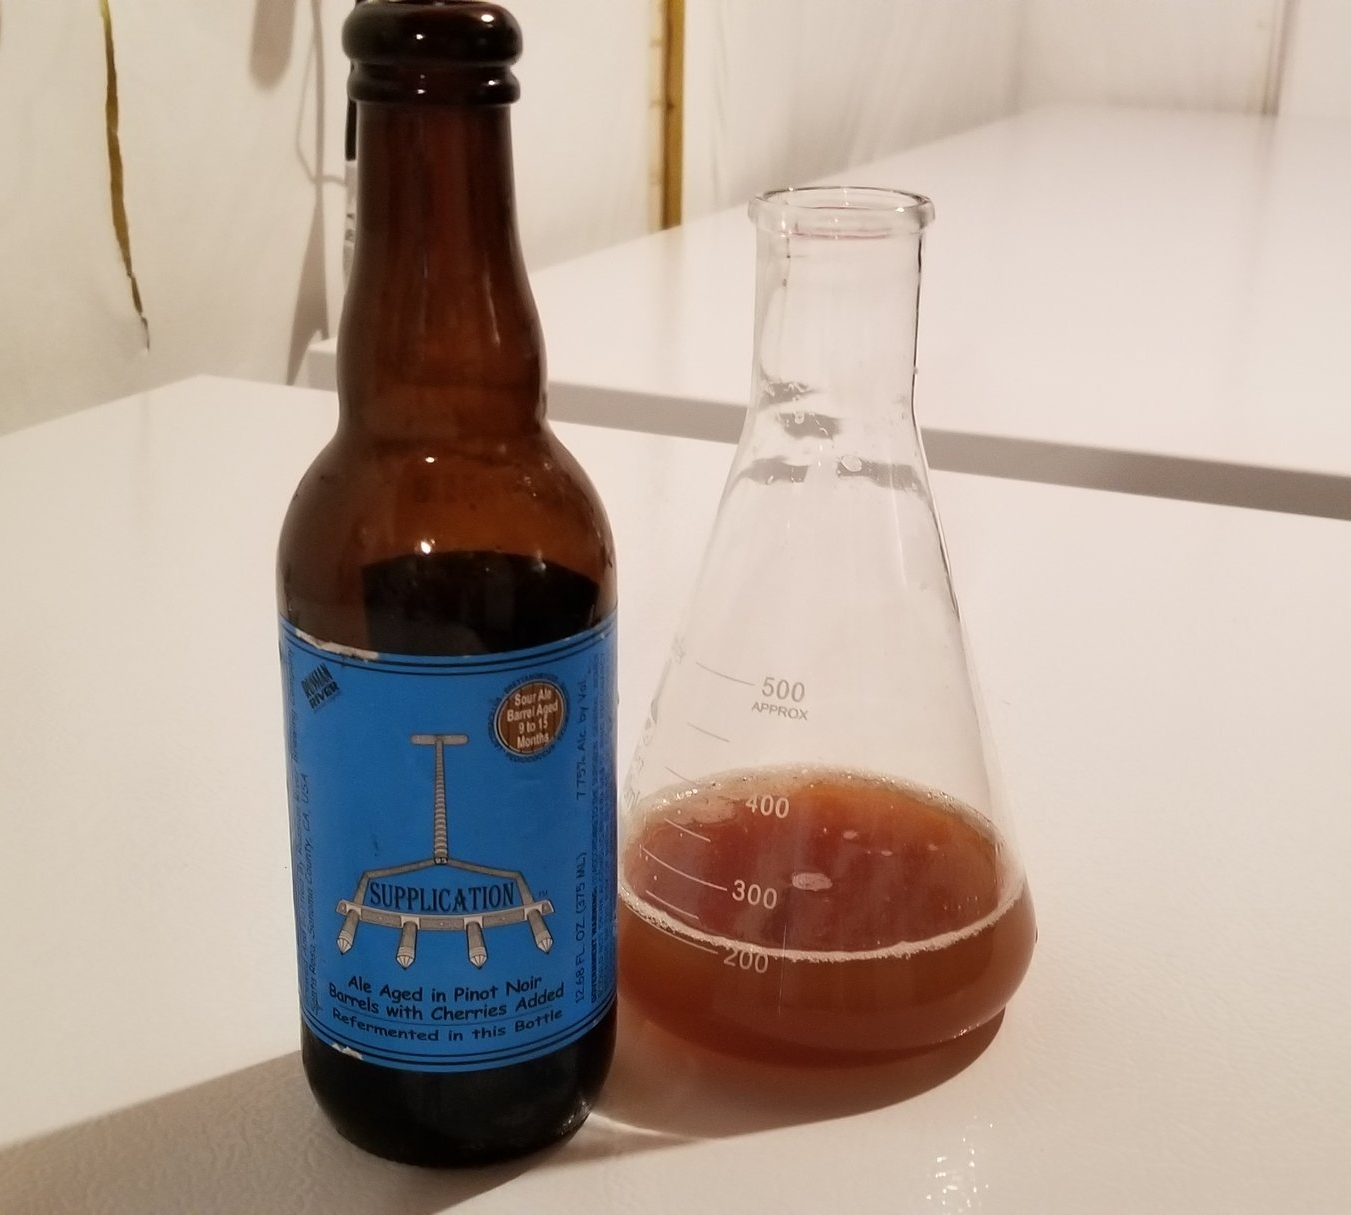 2/28/2018 - With the Wee Heavy yeast nearing its final build up for a brew day on 3/2/2018 it was time to start something fun. A mixed culture bacteria starter. We took 4 different bottles from Russian River and pitched the dregs into some fresh starter wort.